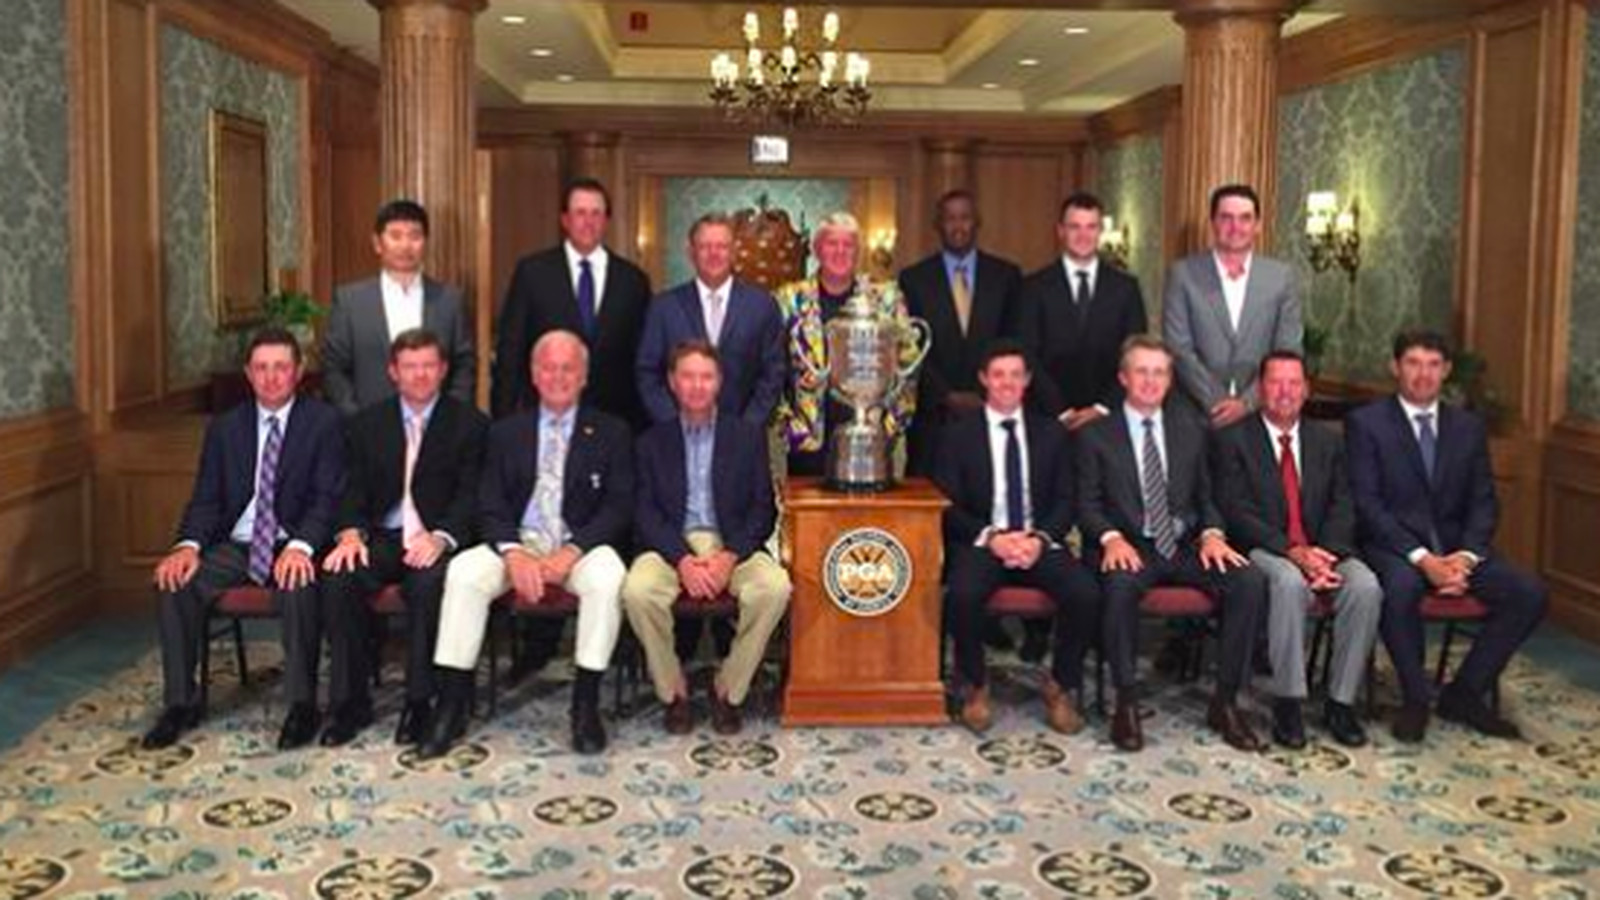 pga champions dinner photo features crazy john daly coat